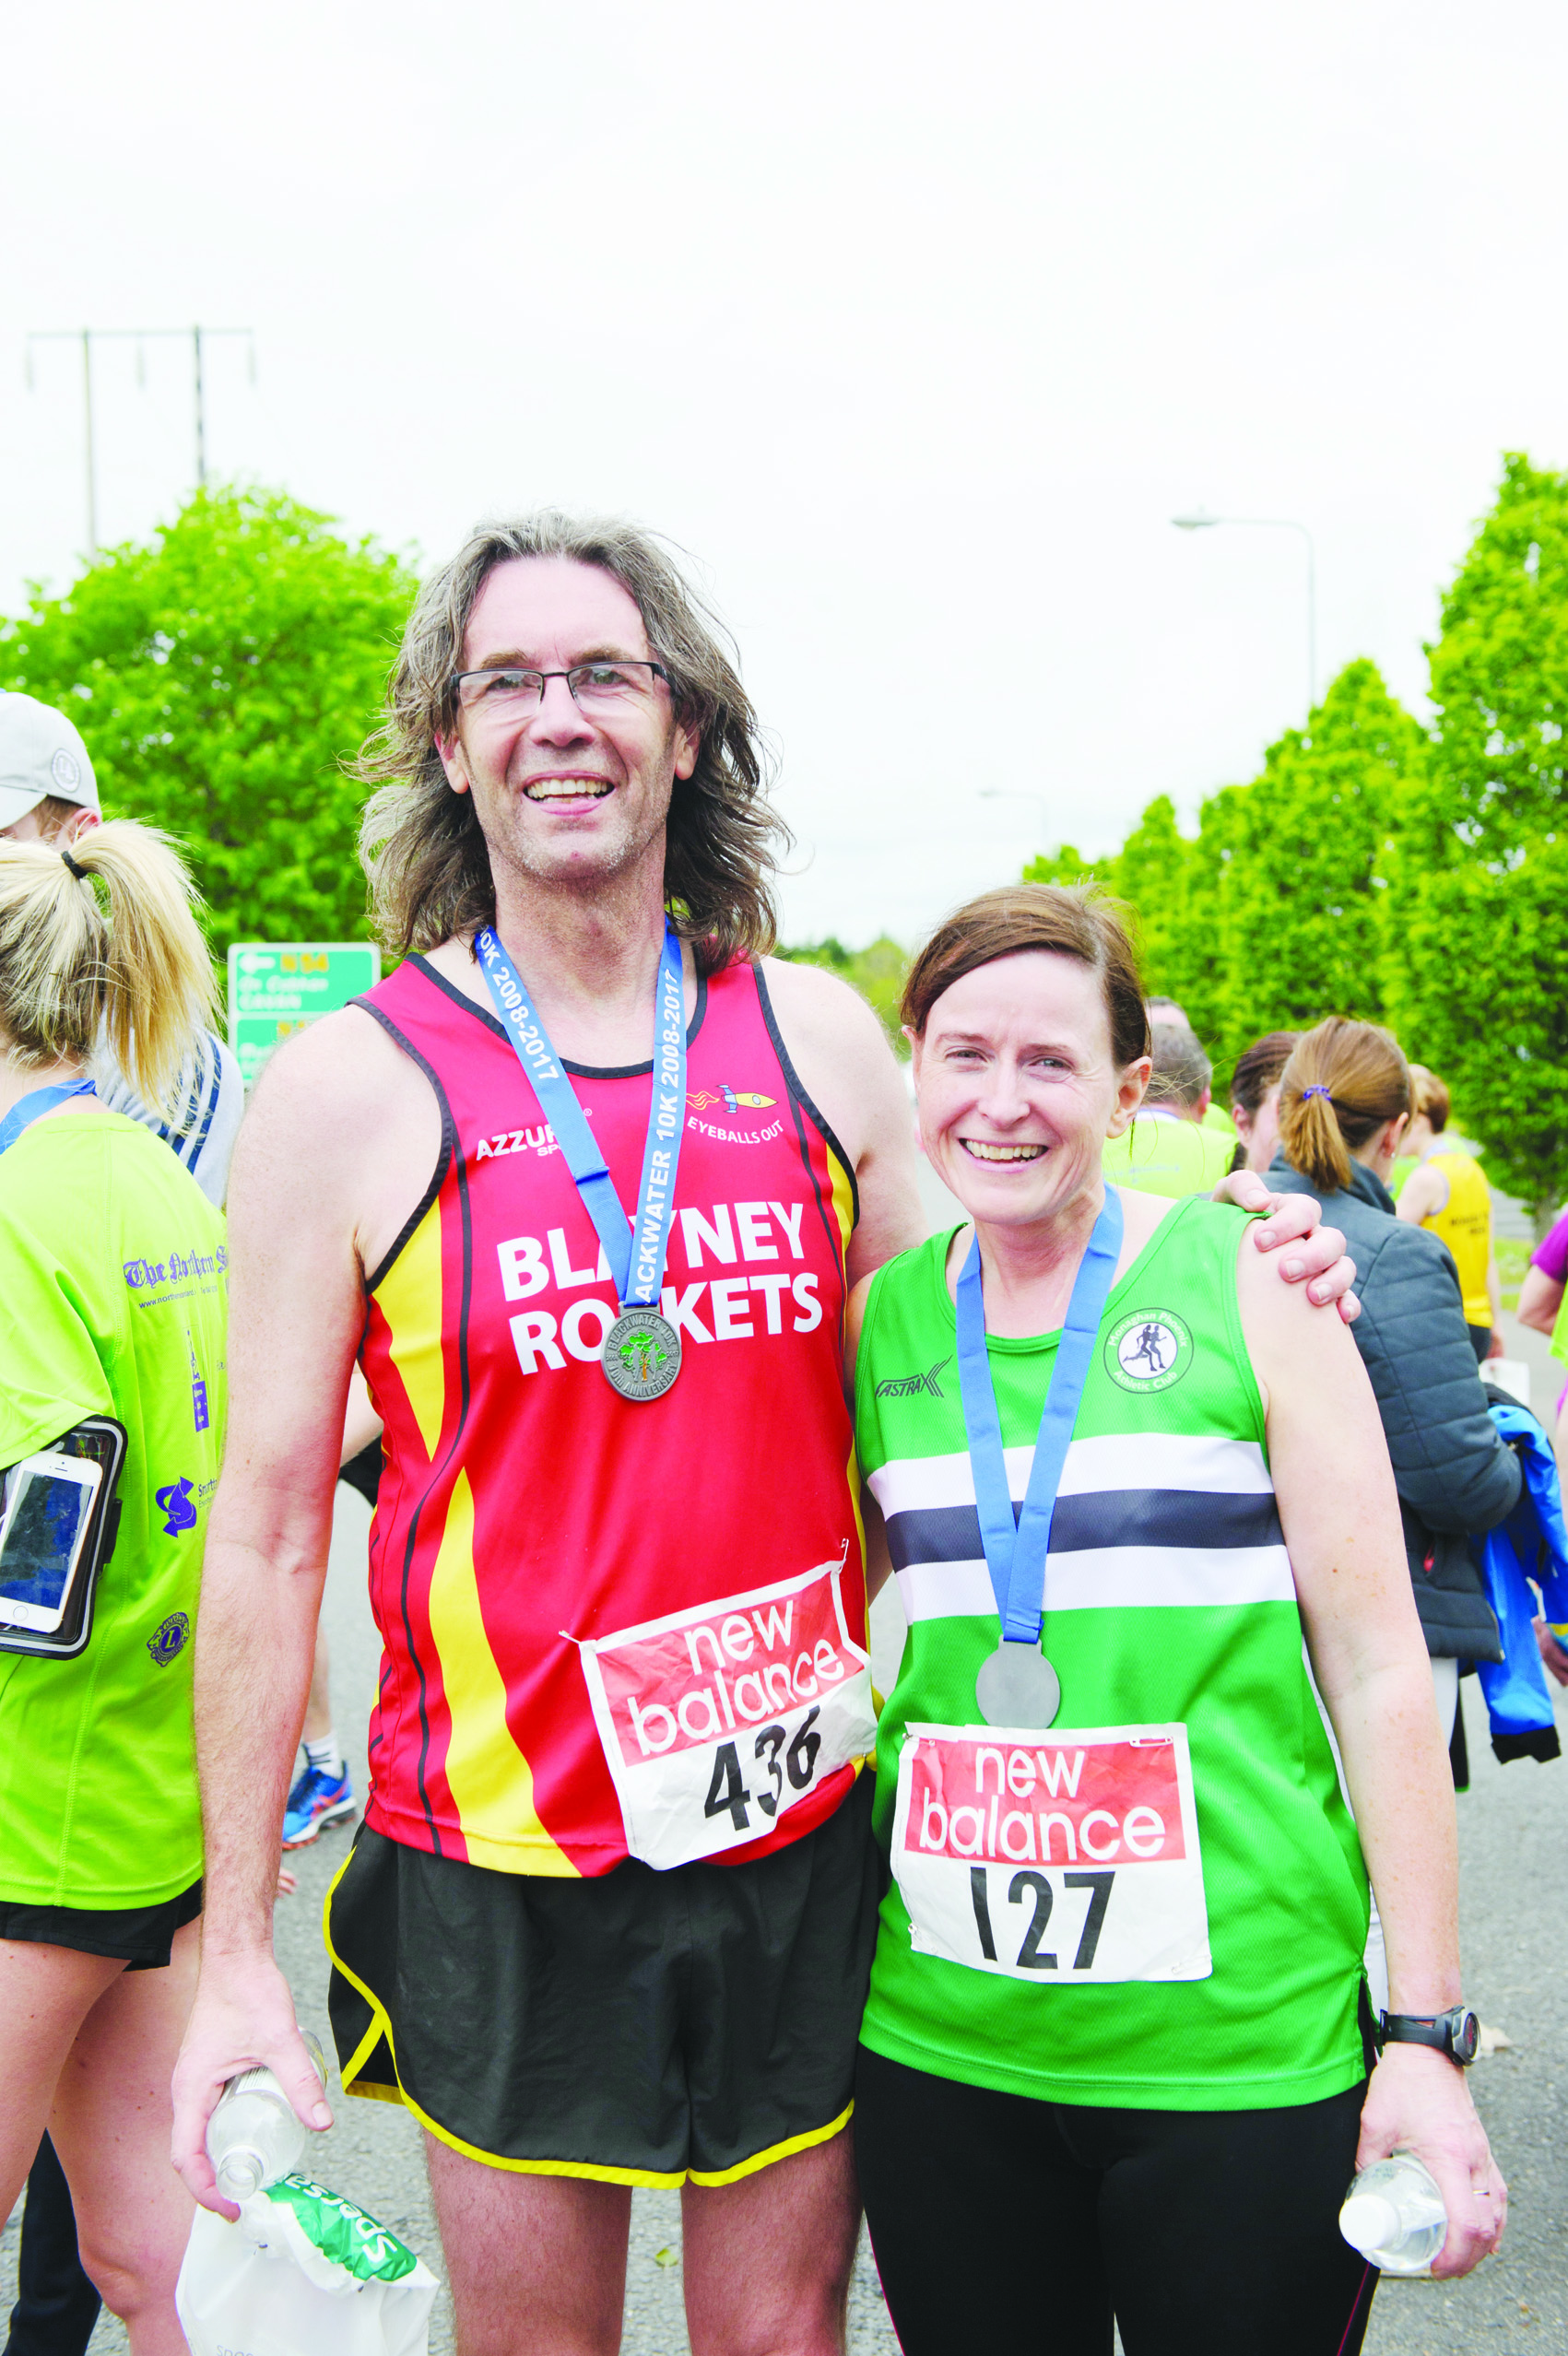 Aidan Campbell, Blayney Rockets and Marie McArdle, Monaghan Phoenix AC, who both have completed all 10 of the Blackwater 10k runs. ©Rory Geary/The Northern Standard